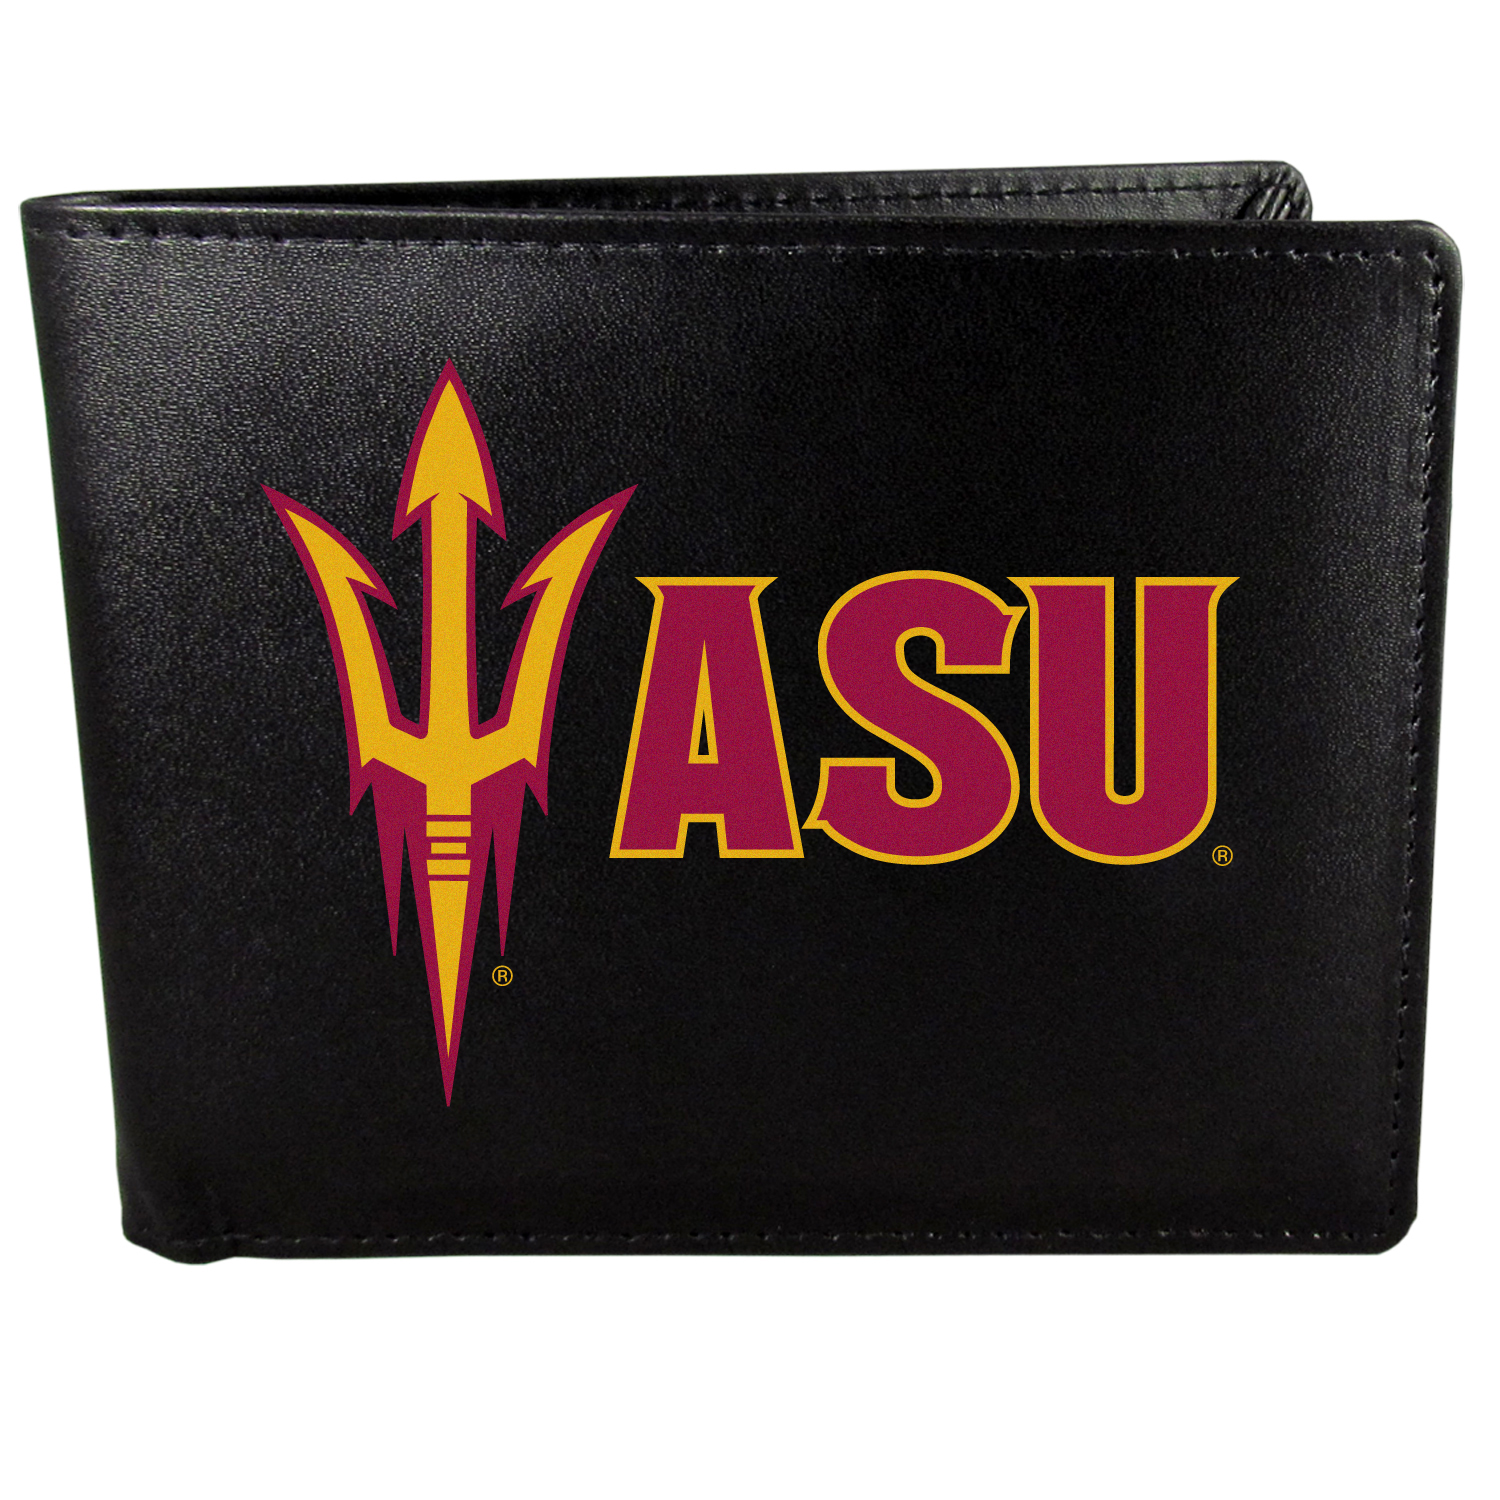 Arizona St. Sun Devils Bi-fold Wallet Large Logo - Sports fans do not have to sacrifice style with this classic bi-fold wallet that sports the Arizona St. Sun Devils?extra large logo. This men's fashion accessory has a leather grain look and expert craftmanship for a quality wallet at a great price. The wallet features inner credit card slots, windowed ID slot and a large billfold pocket. The front of the wallet features a printed team logo.